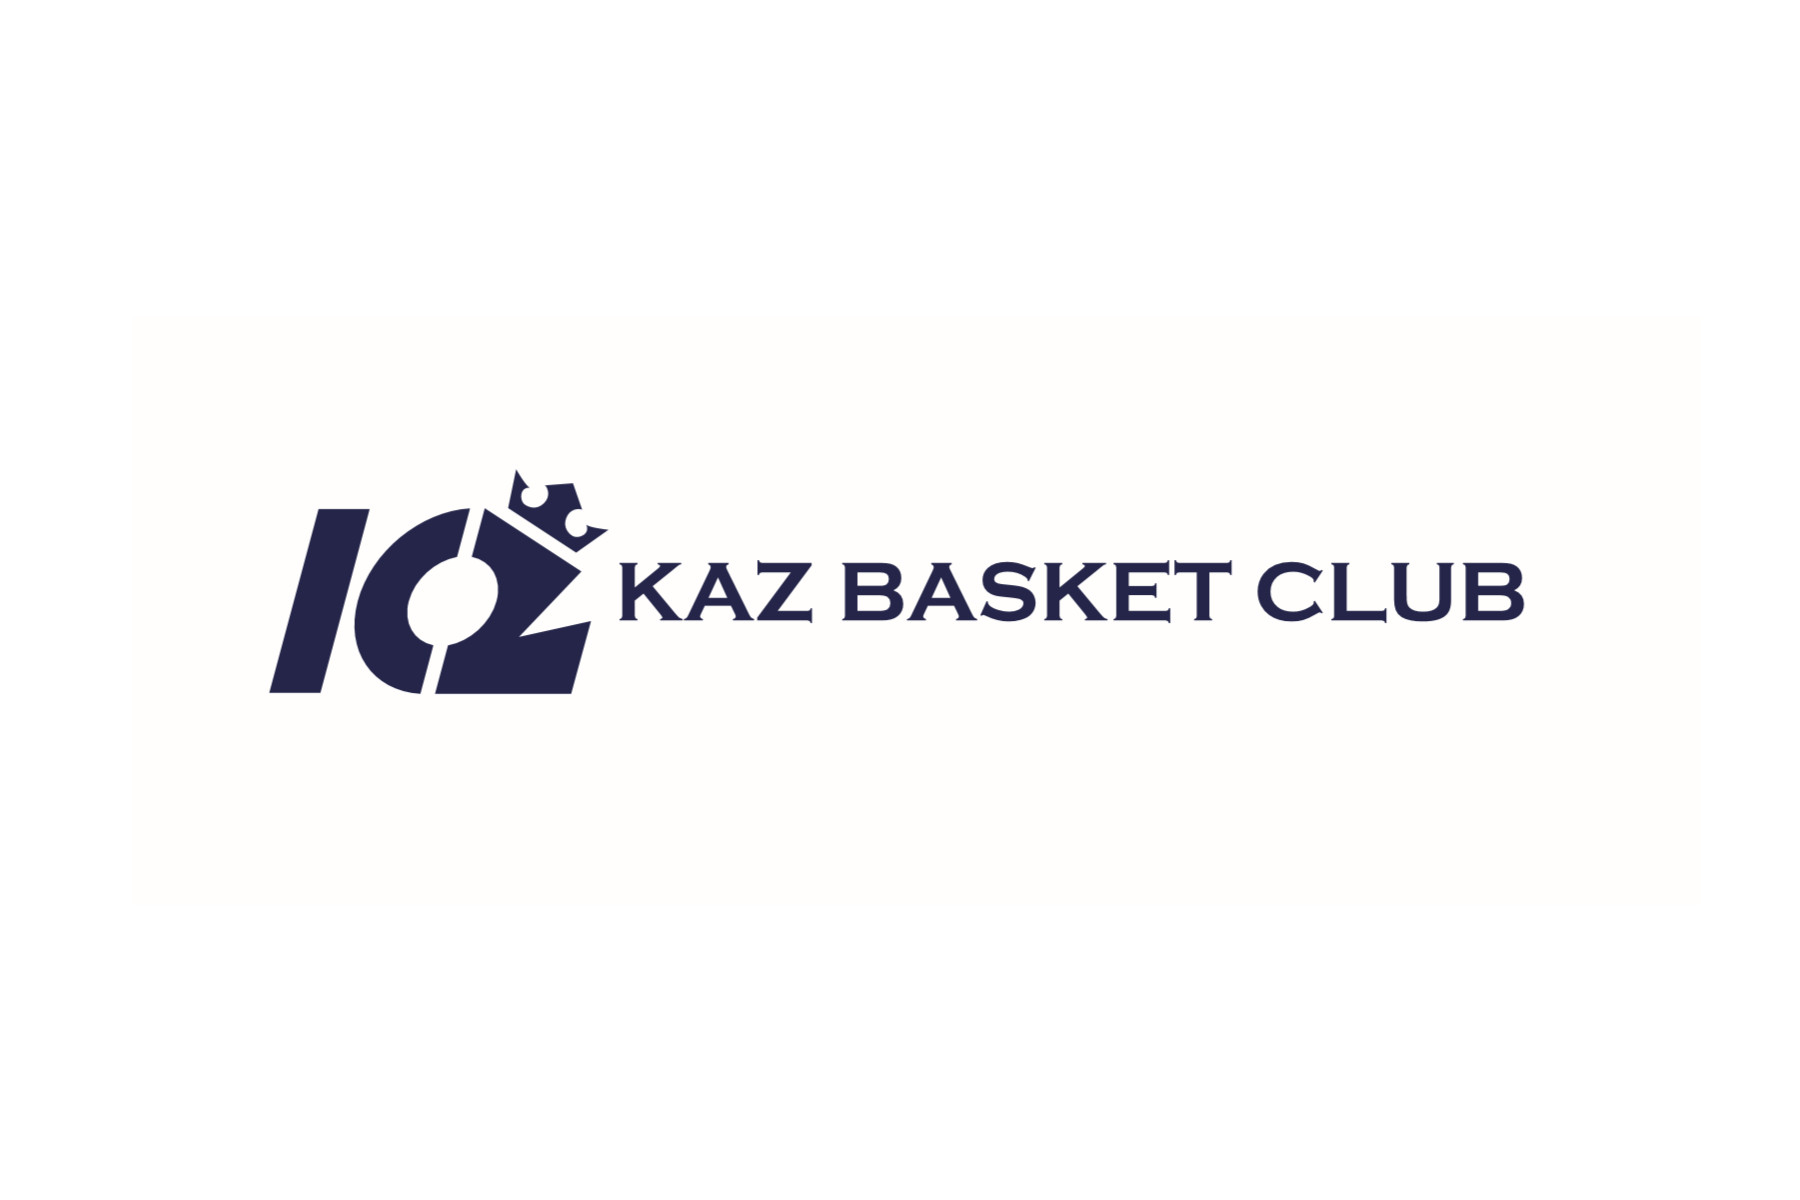 KAZ BASKET CLUB SHOP